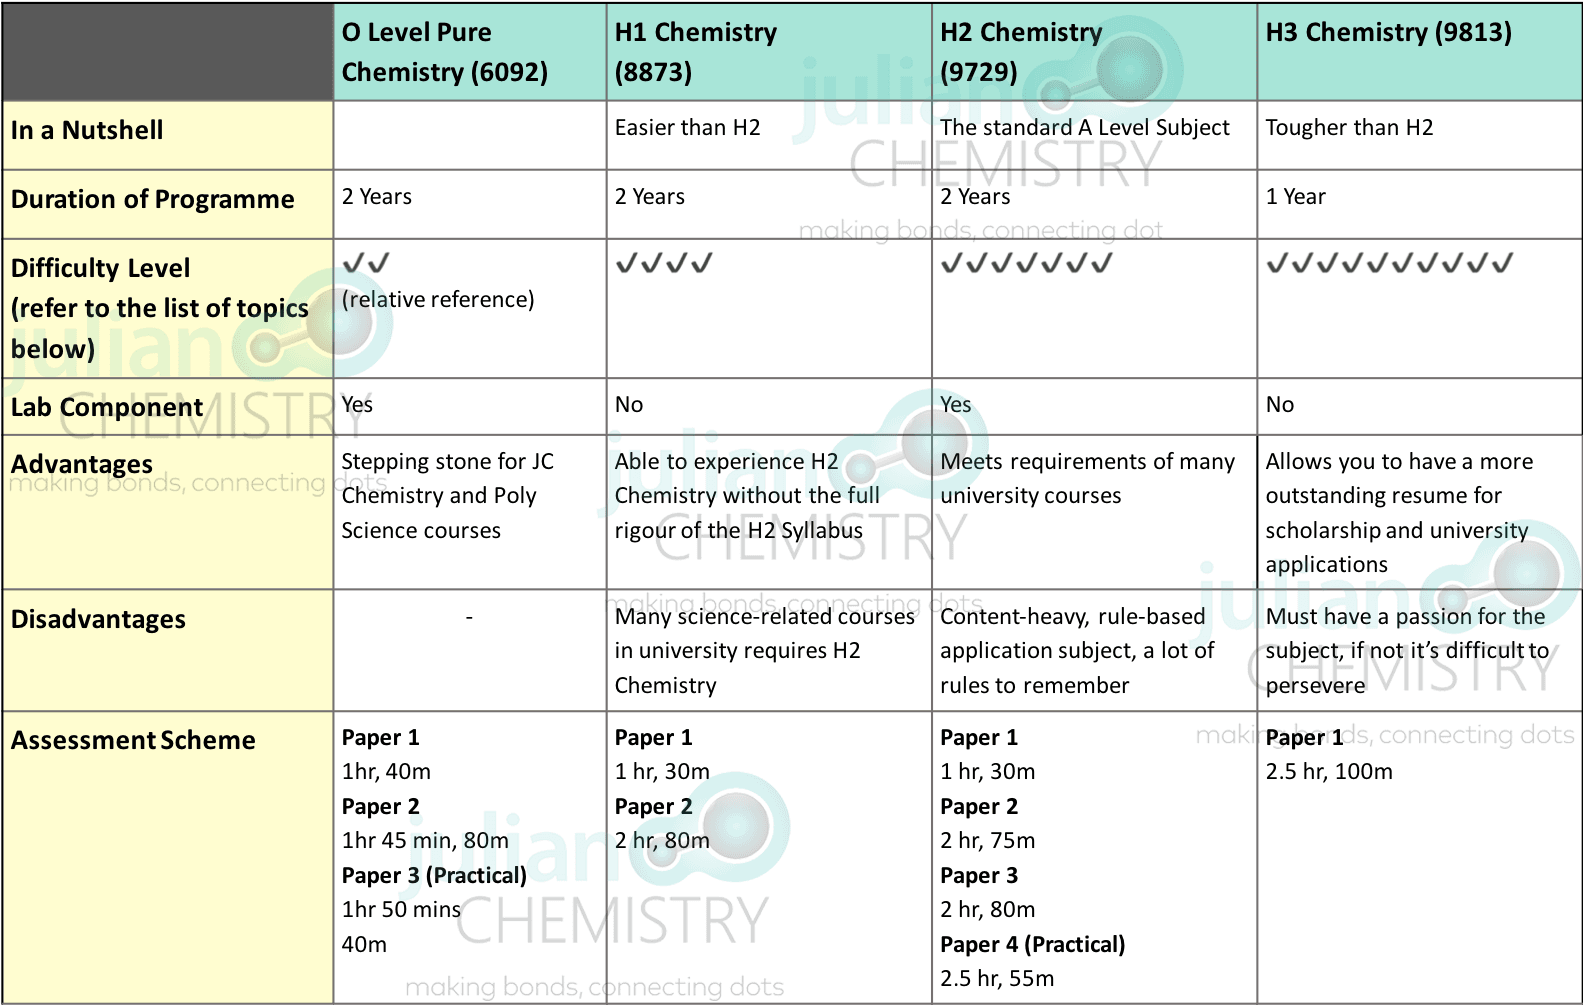 Quick Comparison between H1, H2, H3 Chemistry